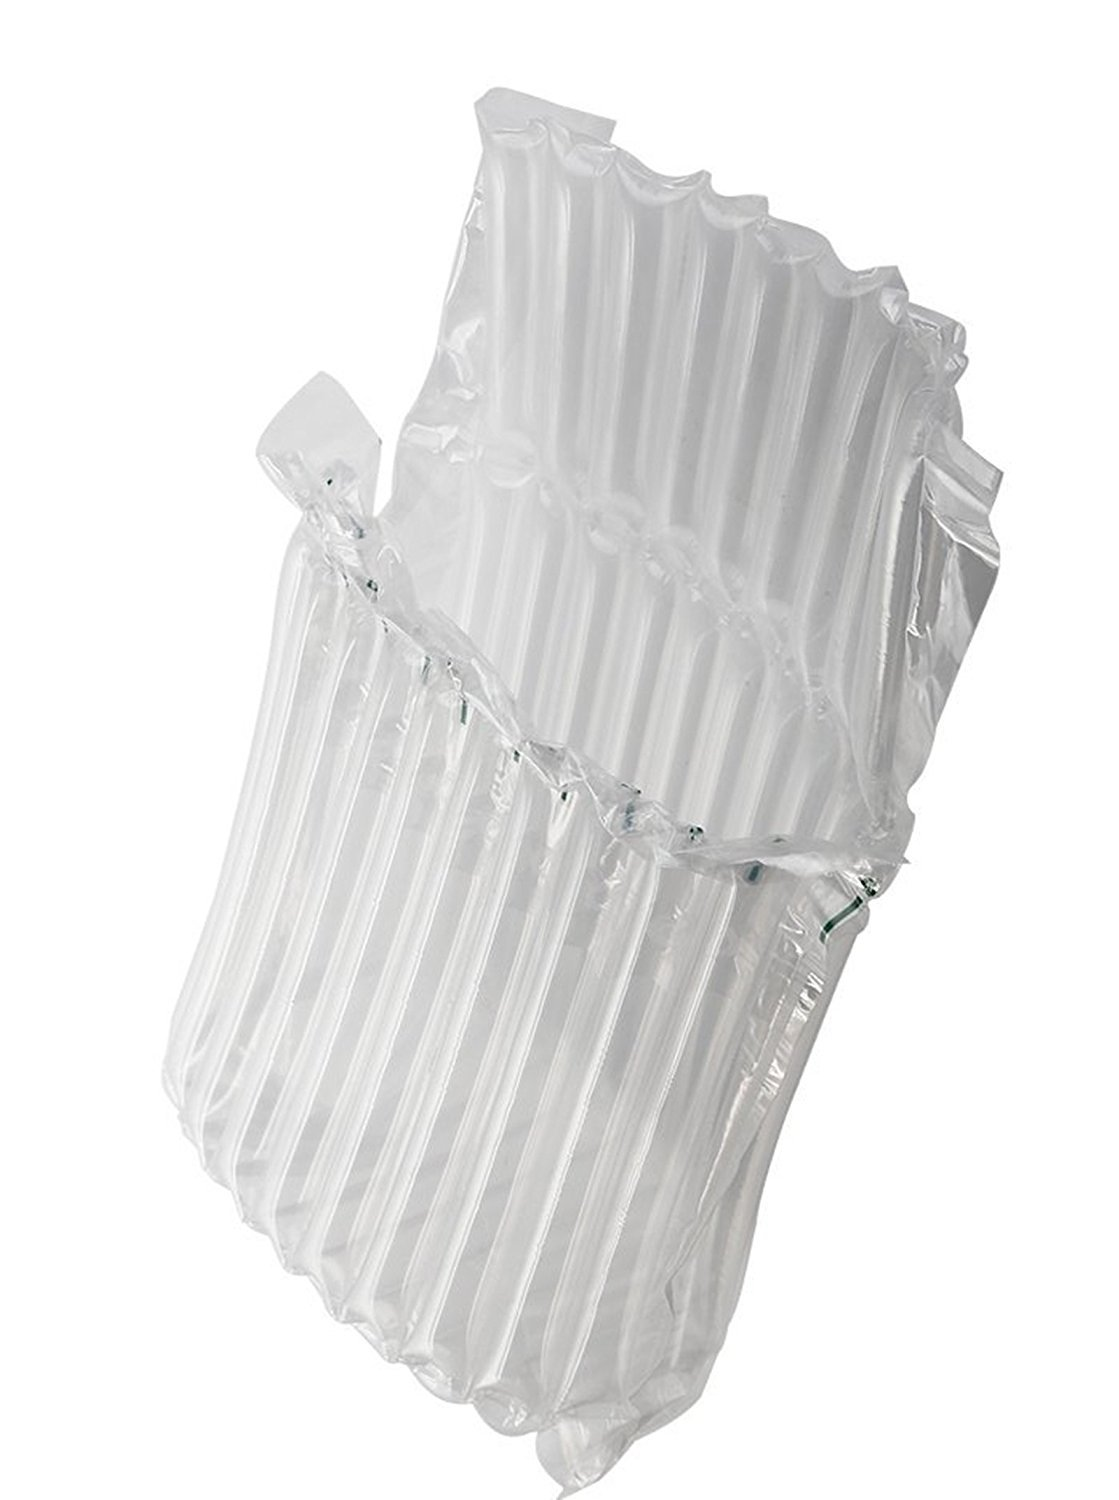 100 Wrap Bubble Inflatable Packaging Air Cushion Bag Baby Milk Powder Shipping Protective 10 Pillar With Pump